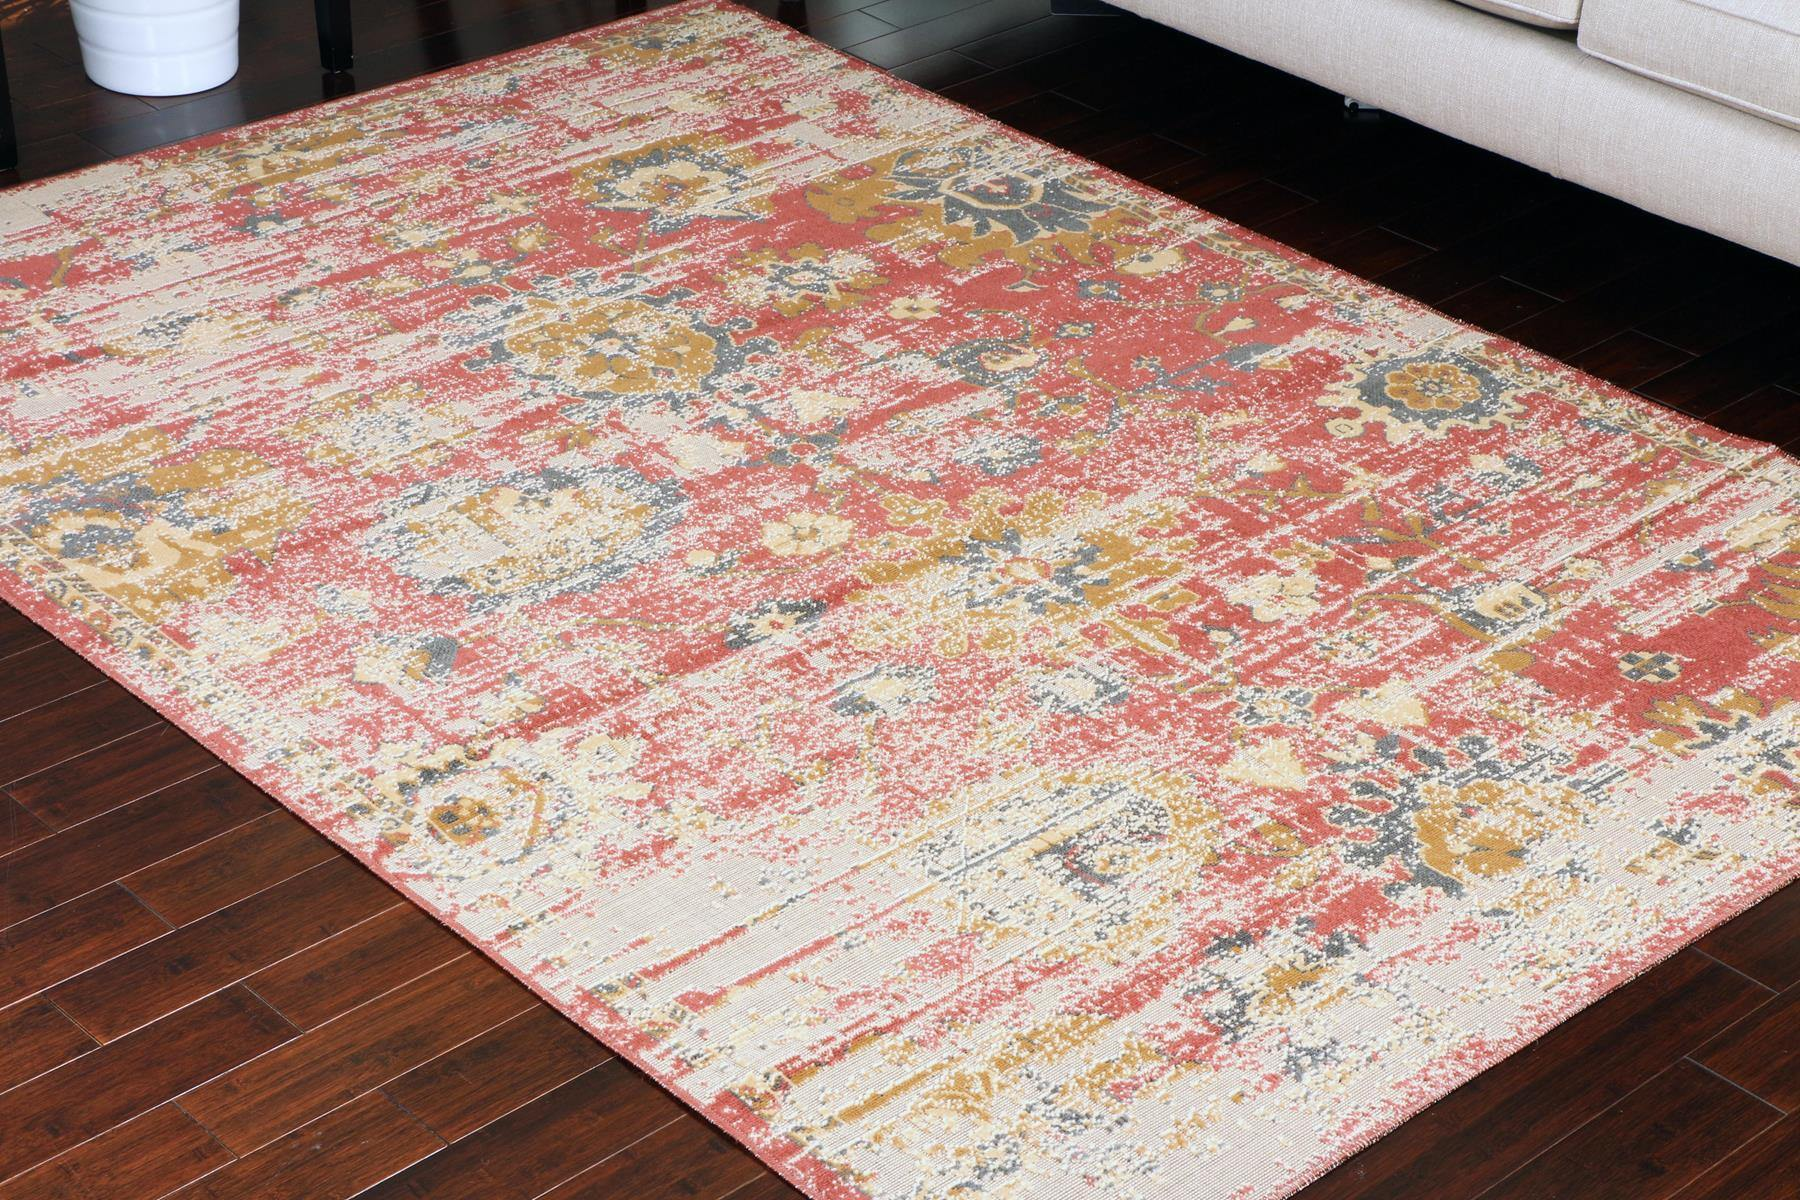 Rustic Red Colorful Worn Area Rug